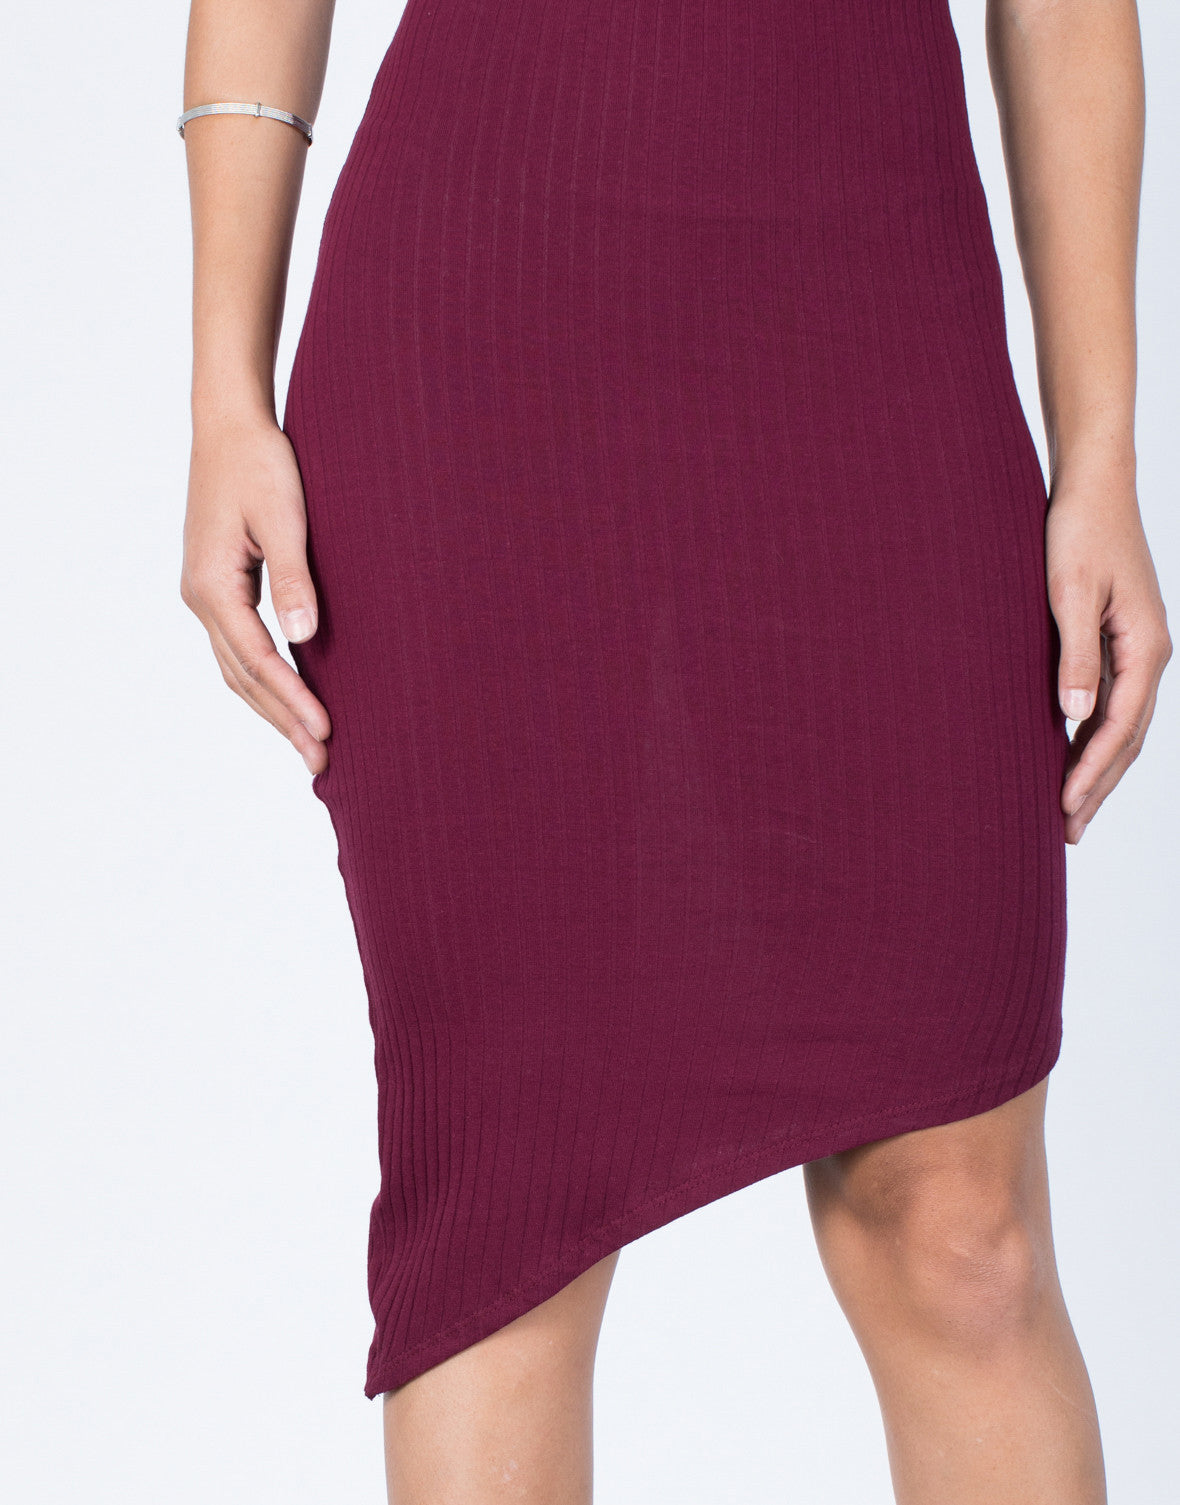 Merlot Jodie Asymmetrical Dress - Detail View